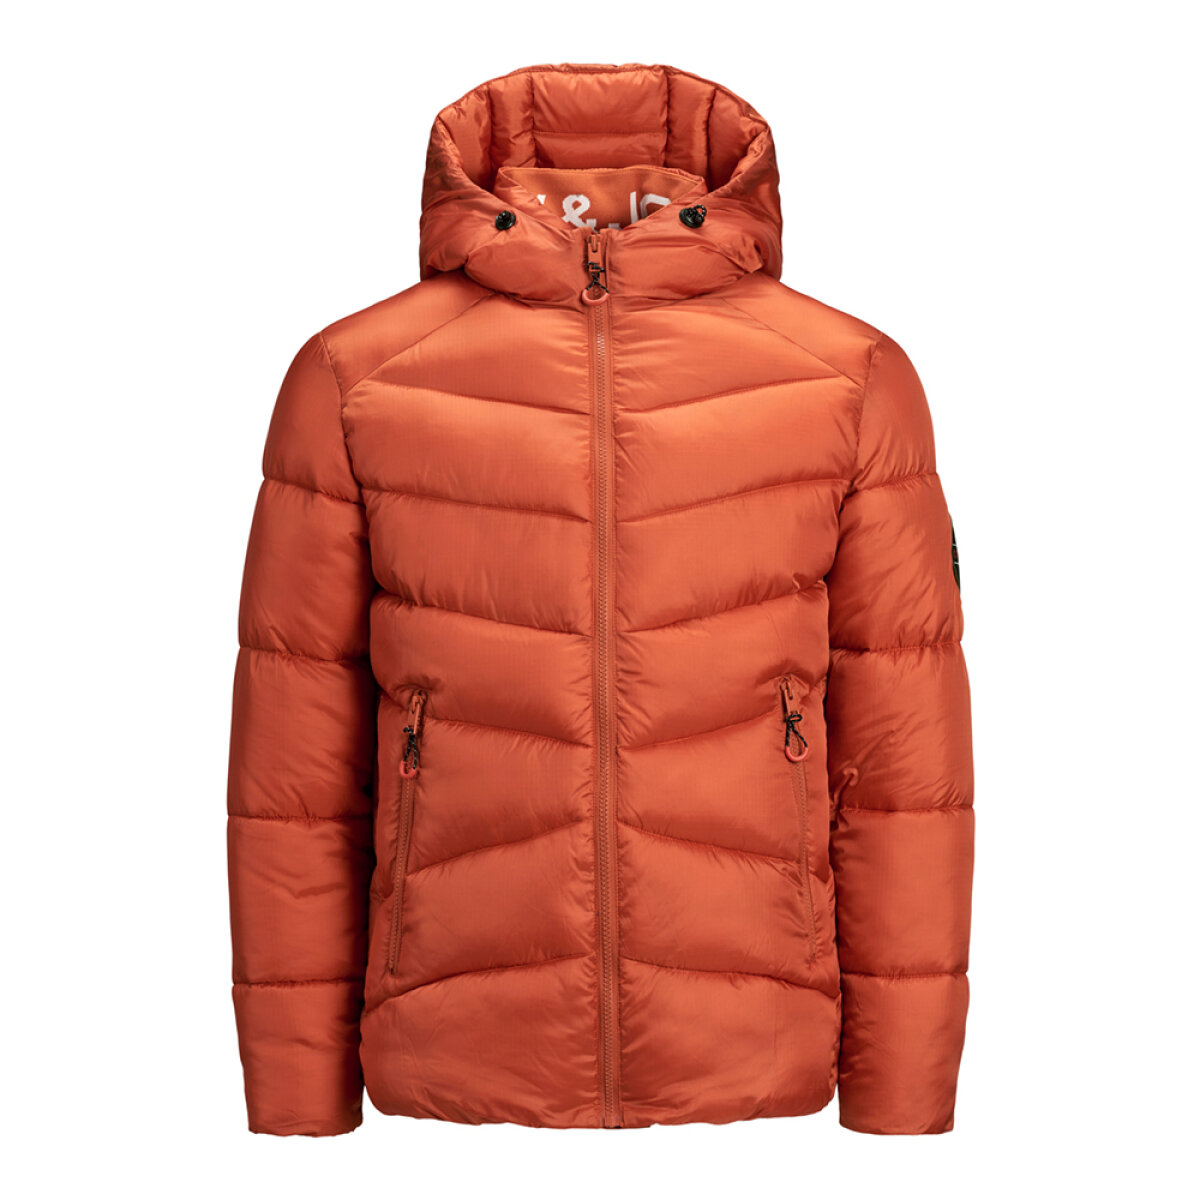 Jack & Jones Junior jongens winterjas 12177064 oranje